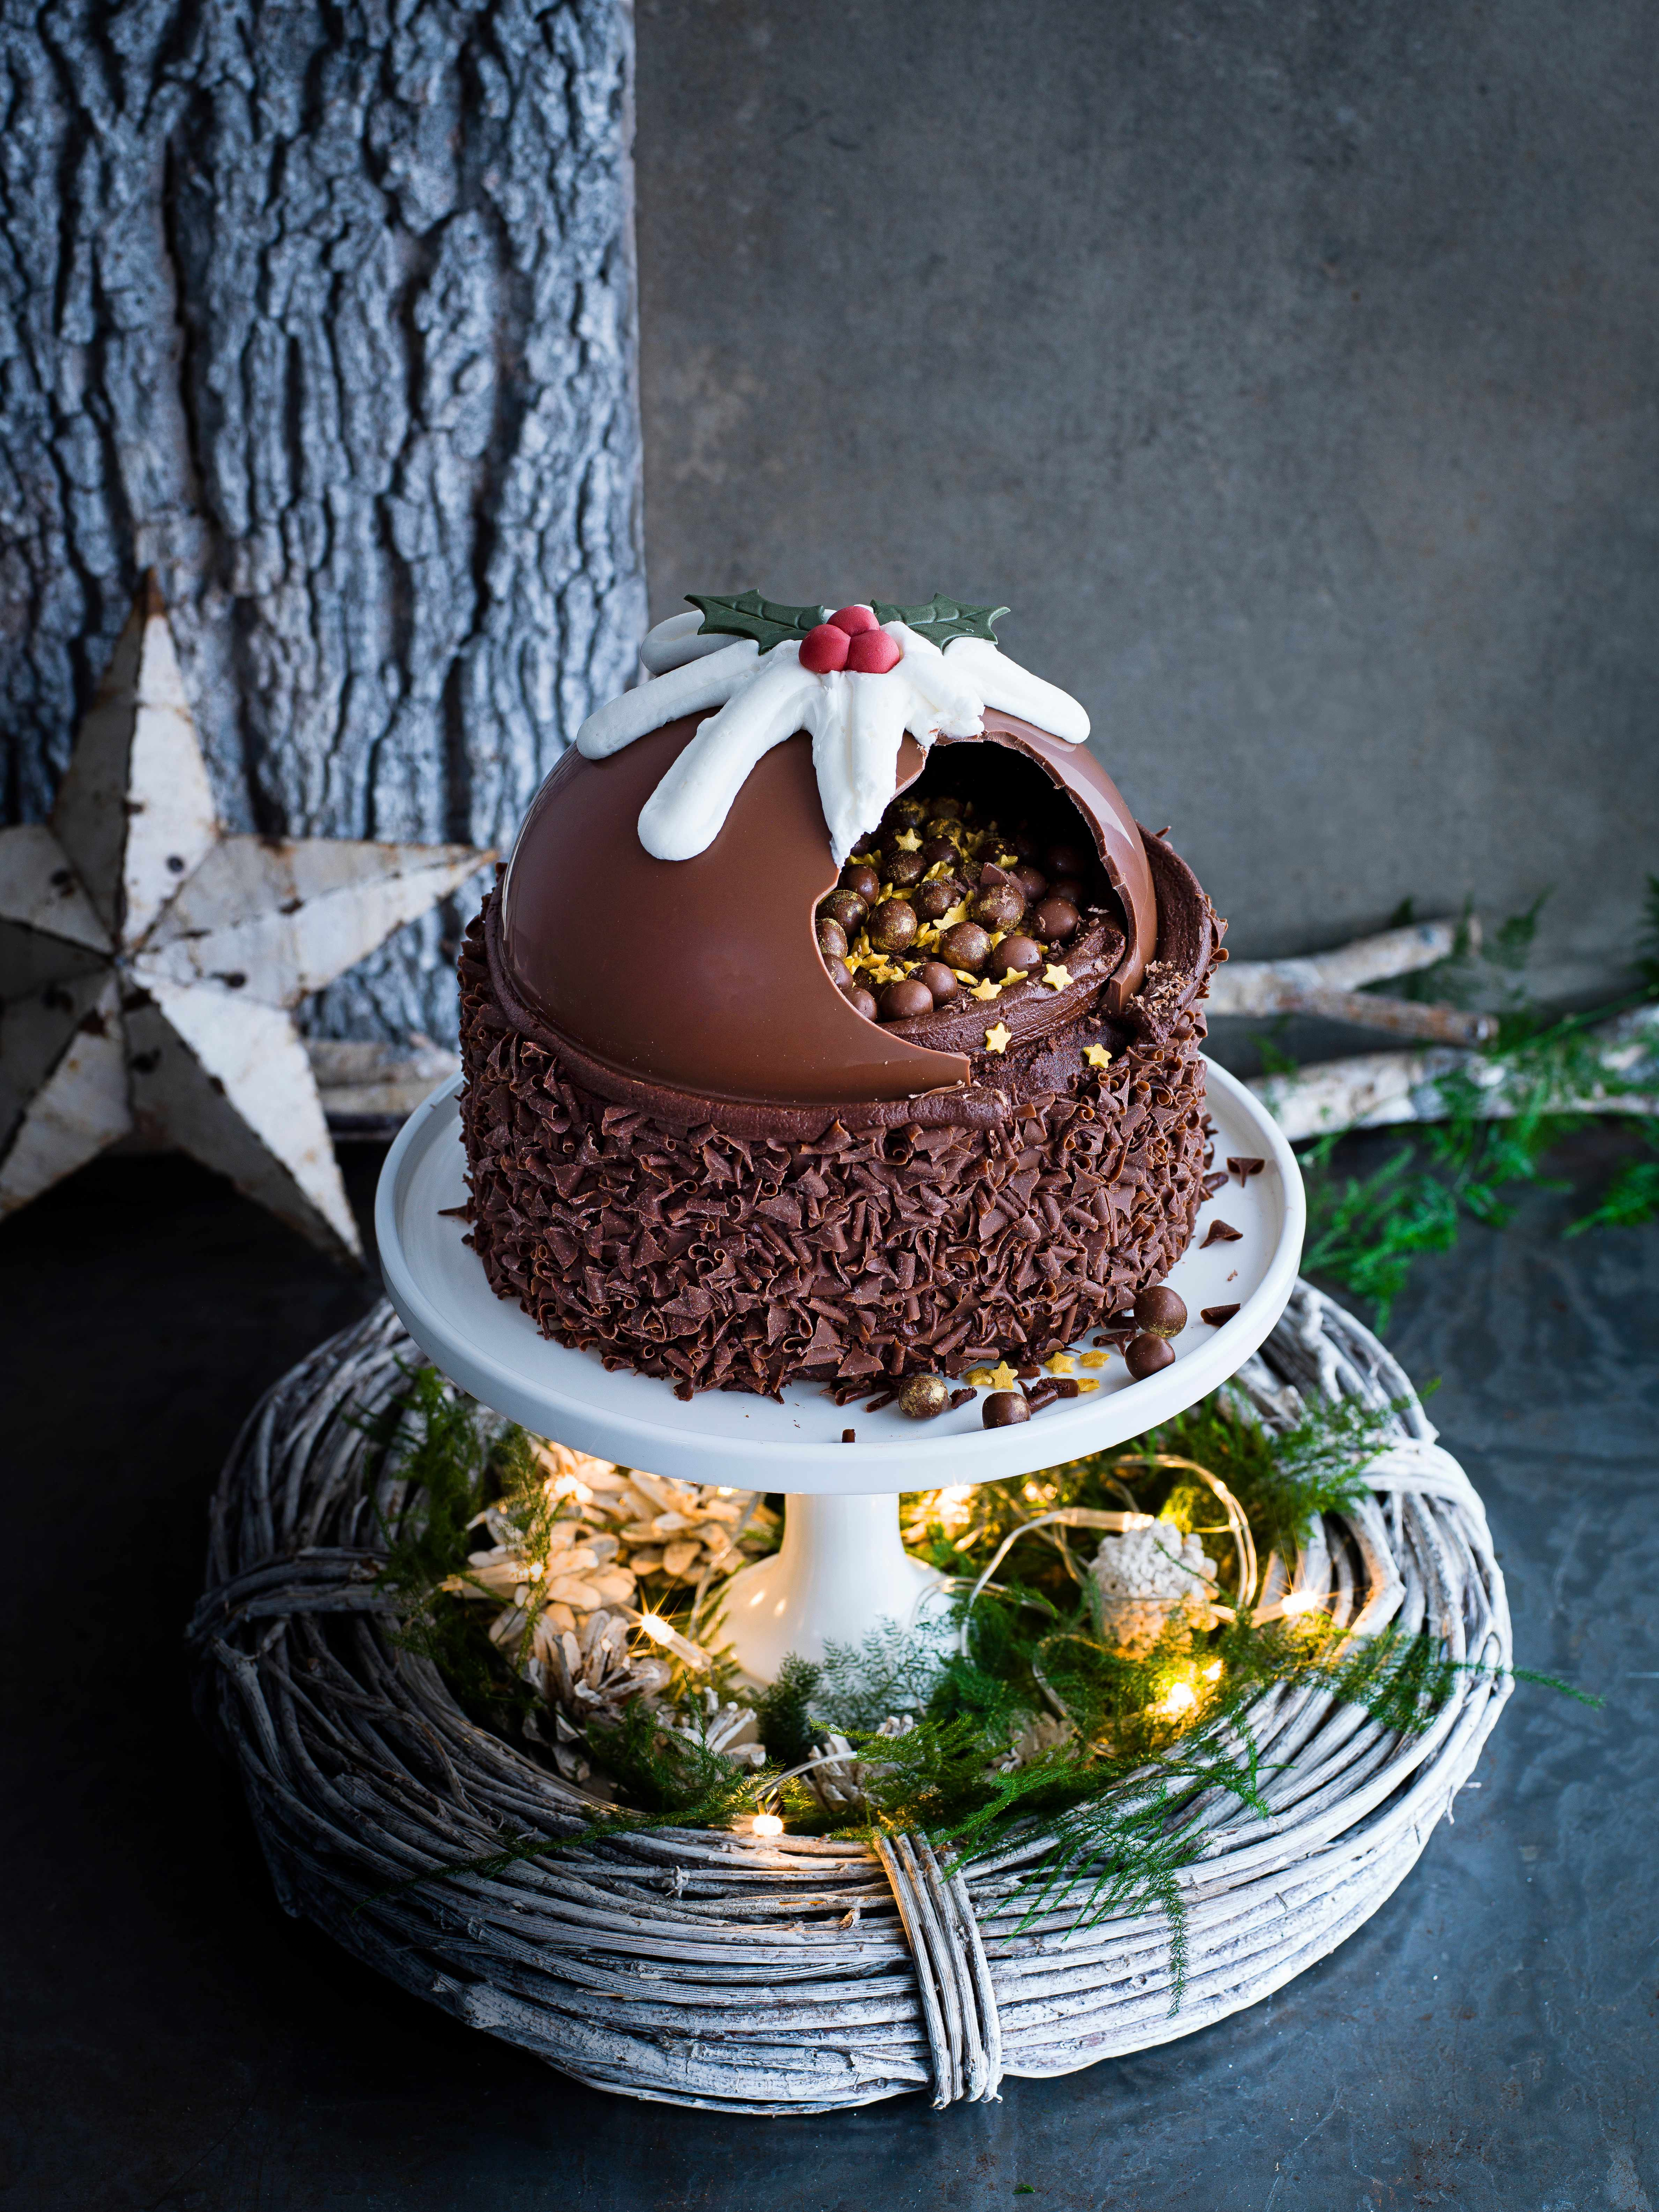 Asda's Christmas Pudding smash cake